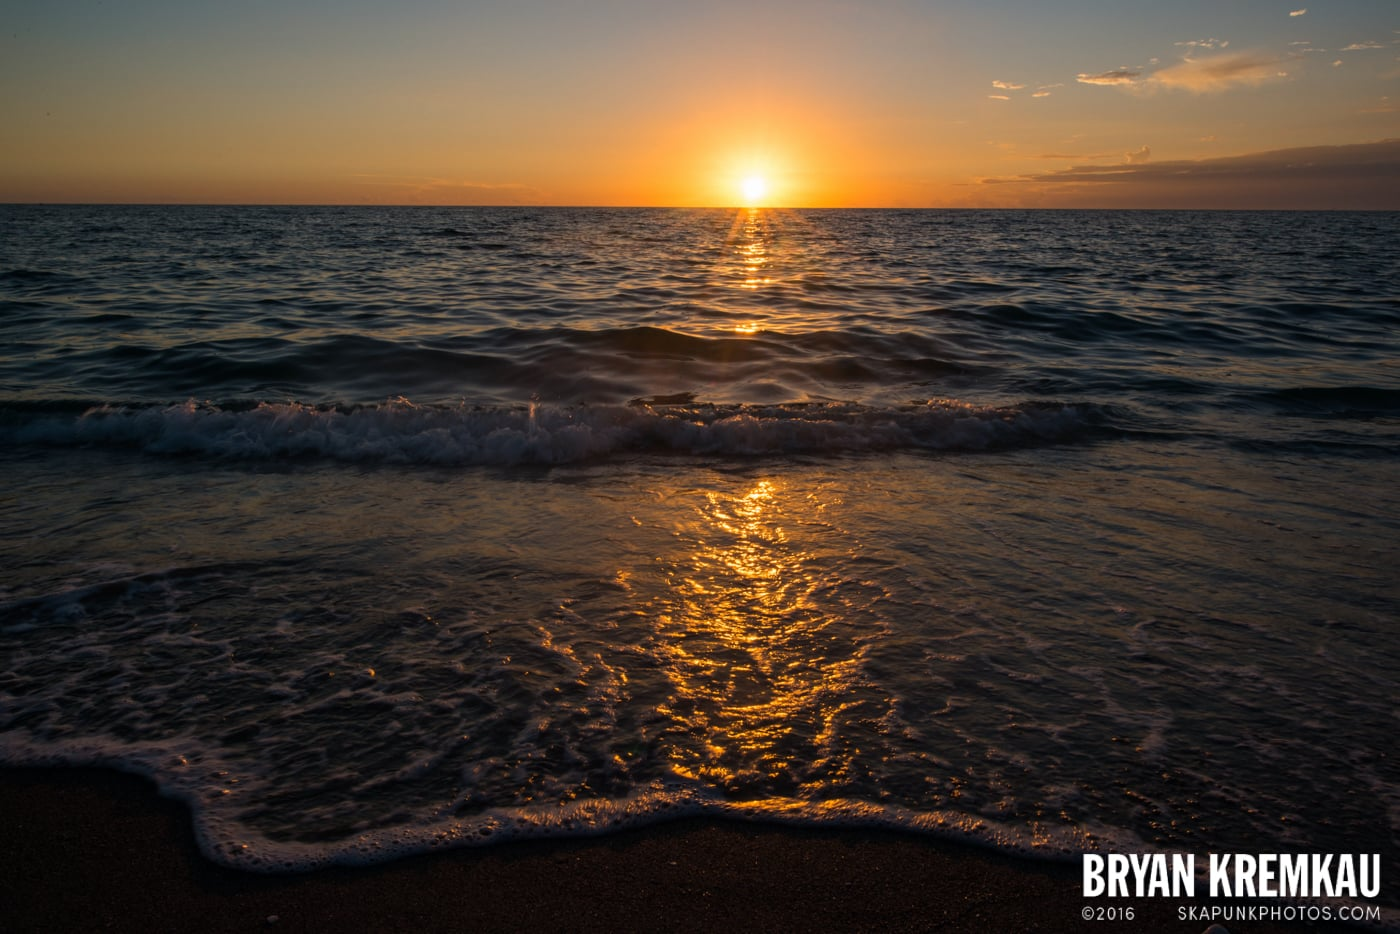 Sunsets, Astrophotography & Birds @ Venice, Florida - 10.25.14 - 11.5.14 (118)